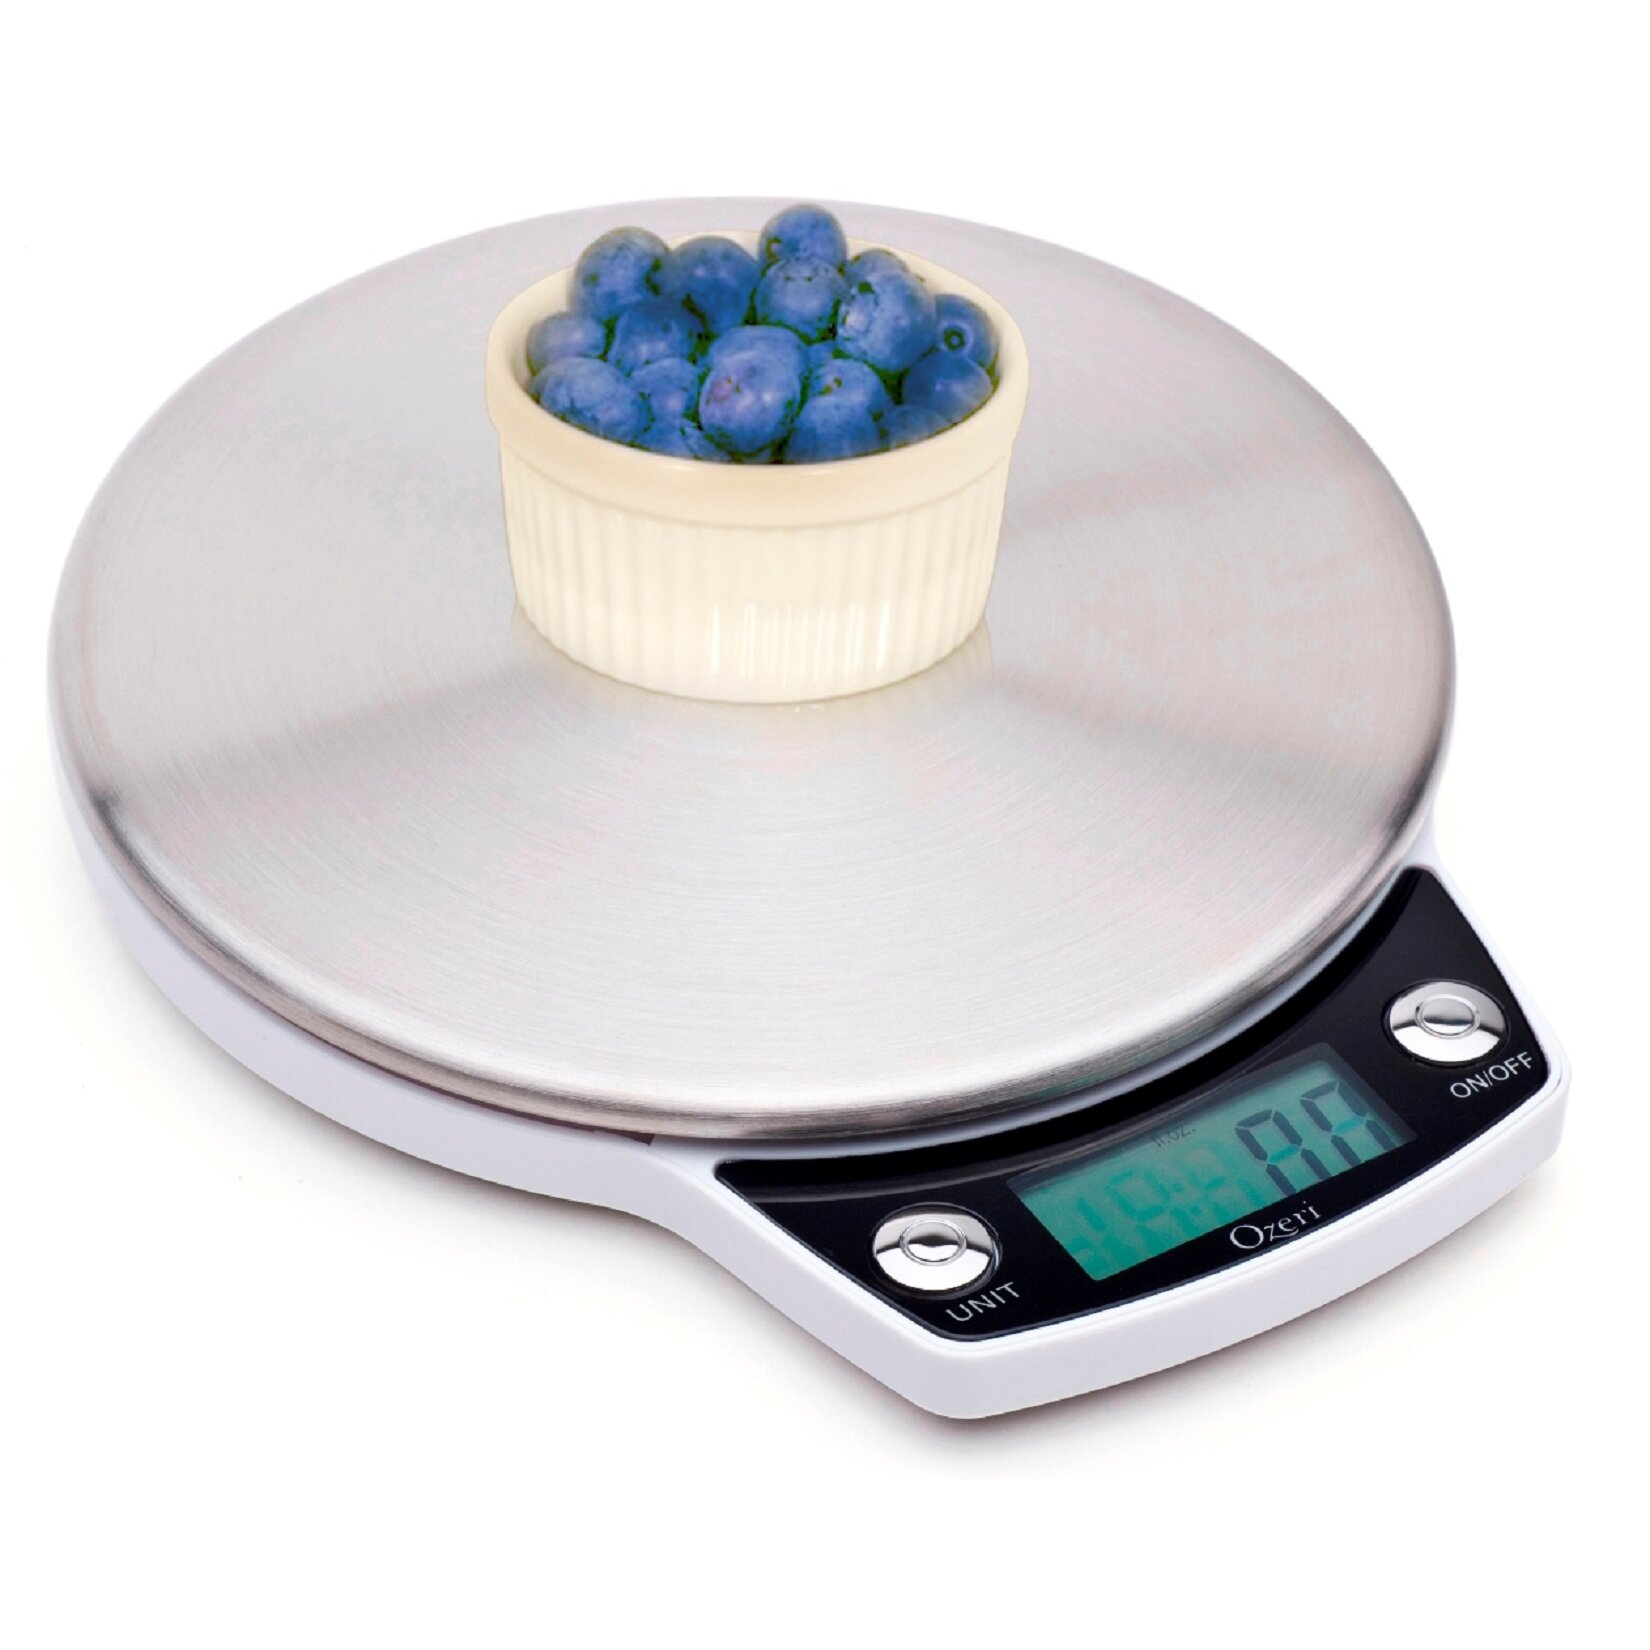 Digital Kitchen Scale: Ozeri Precision Pro Stainless-Steel Digital Kitchen Scale